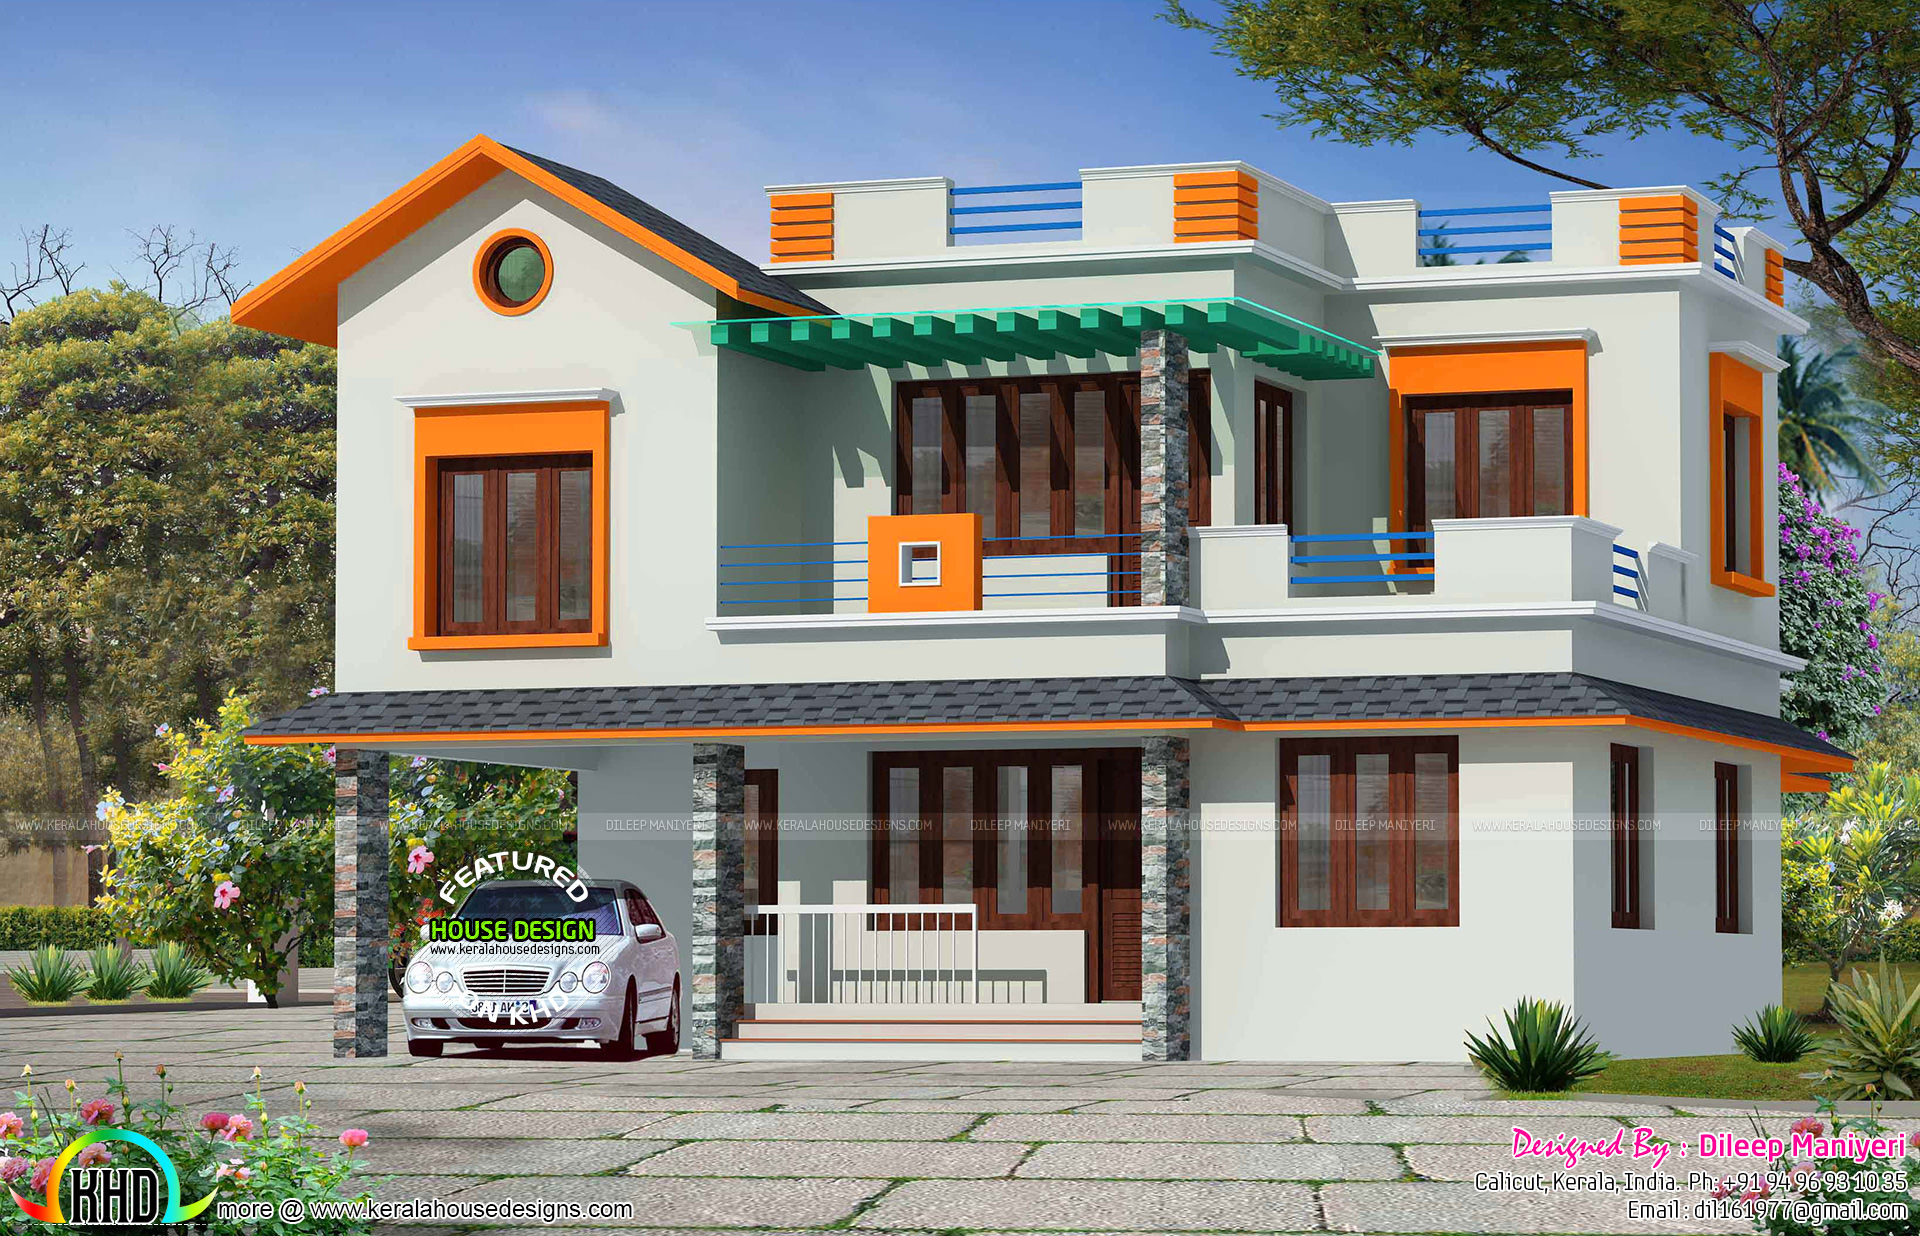 4 Bedroom Mixed Roof Home Part - 23: No. Of Bedrooms : 4. Design Style : Mixed Roof. Facility Details. Read More  » Please Follow Kerala Home Design